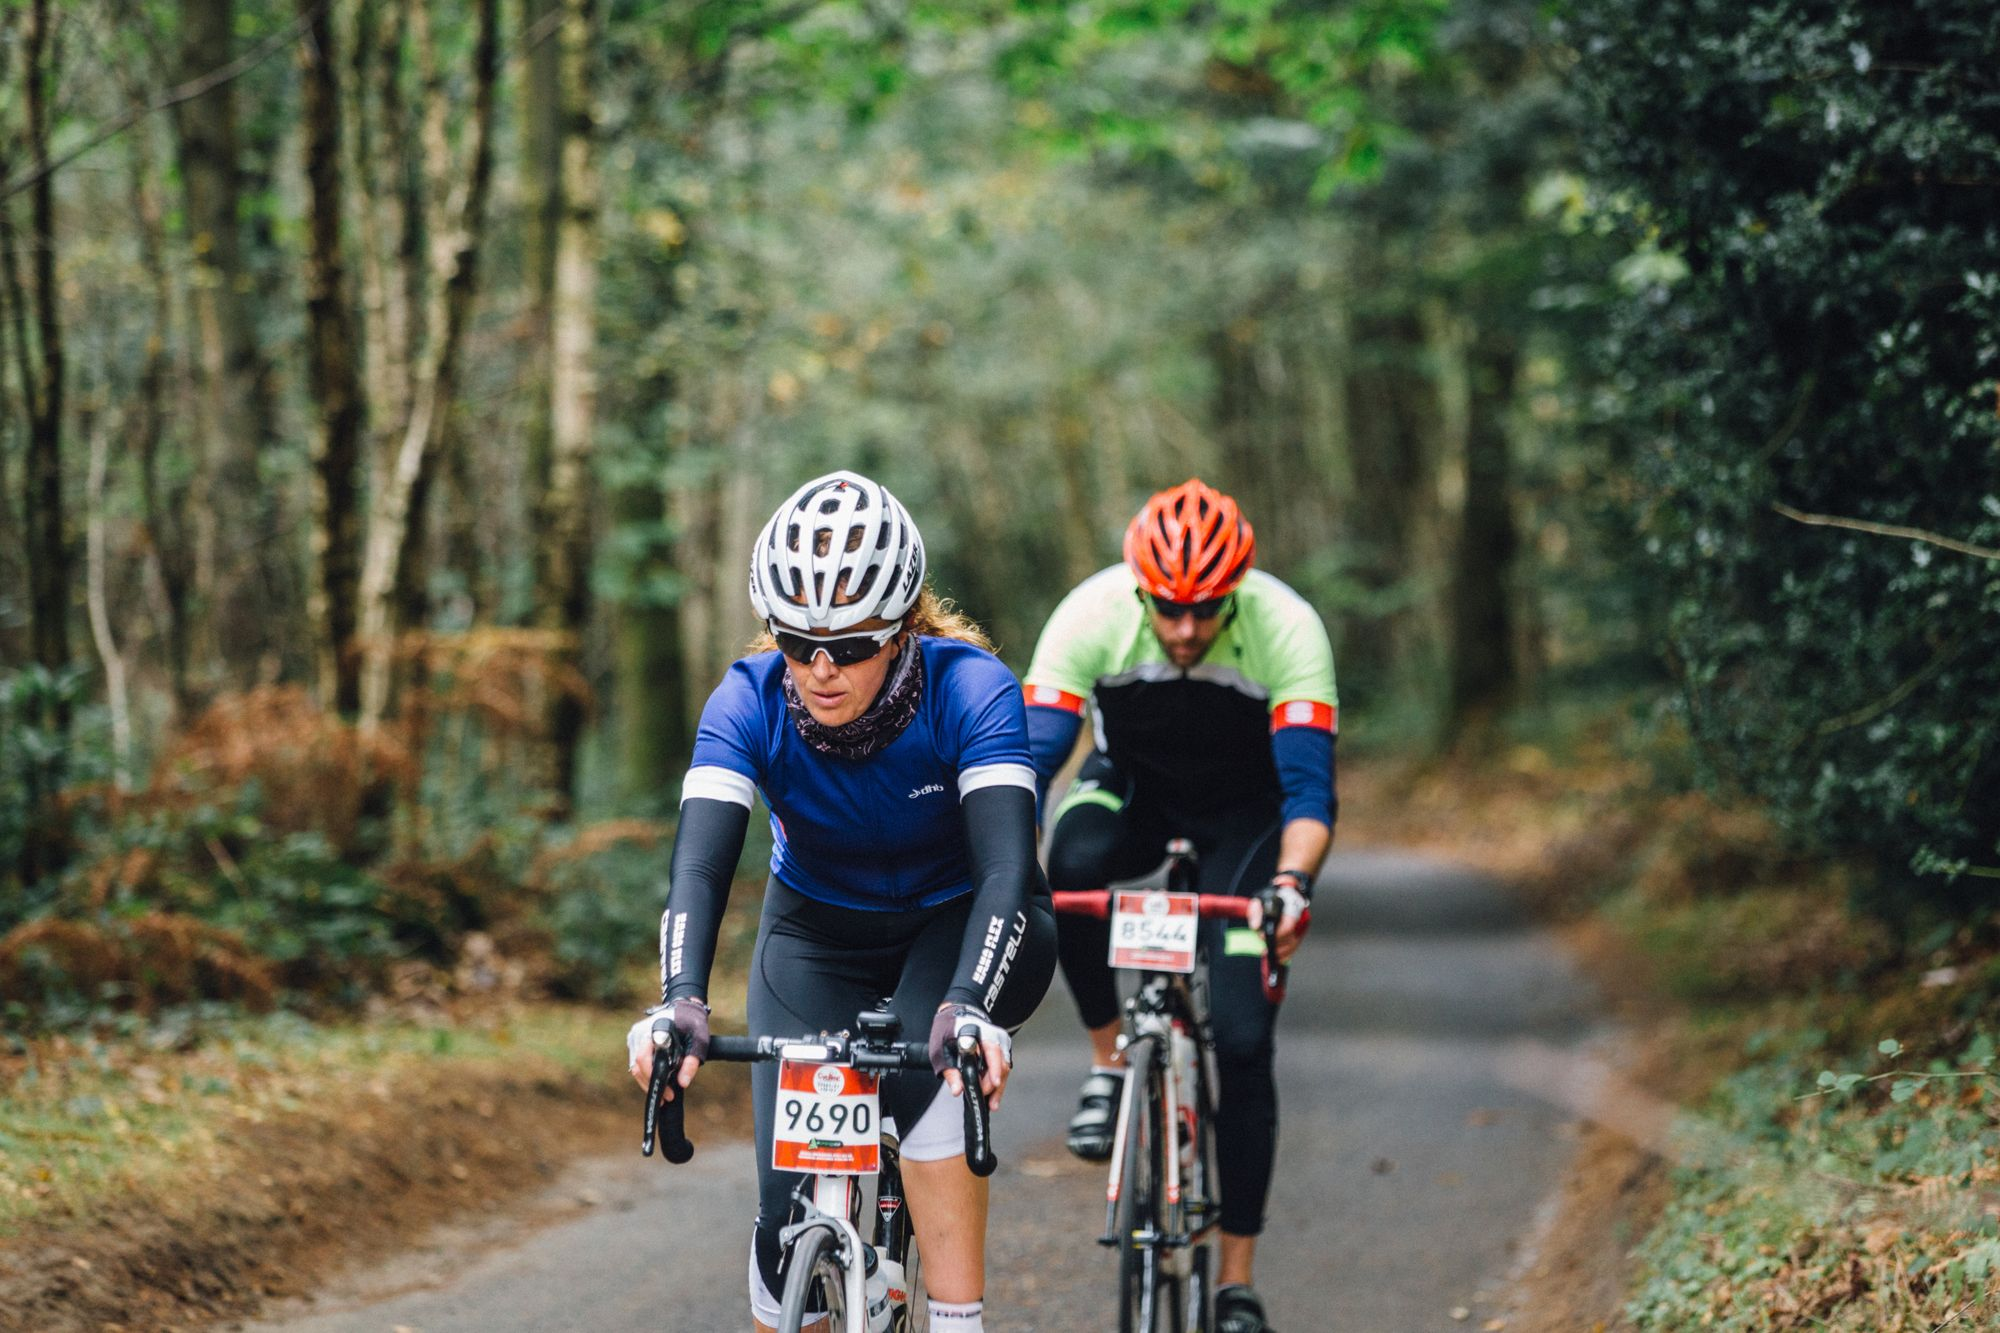 Laka is partnering with UK Cycling Events (UKCE) to offer community-powered bicycle cover for UKCE event participants